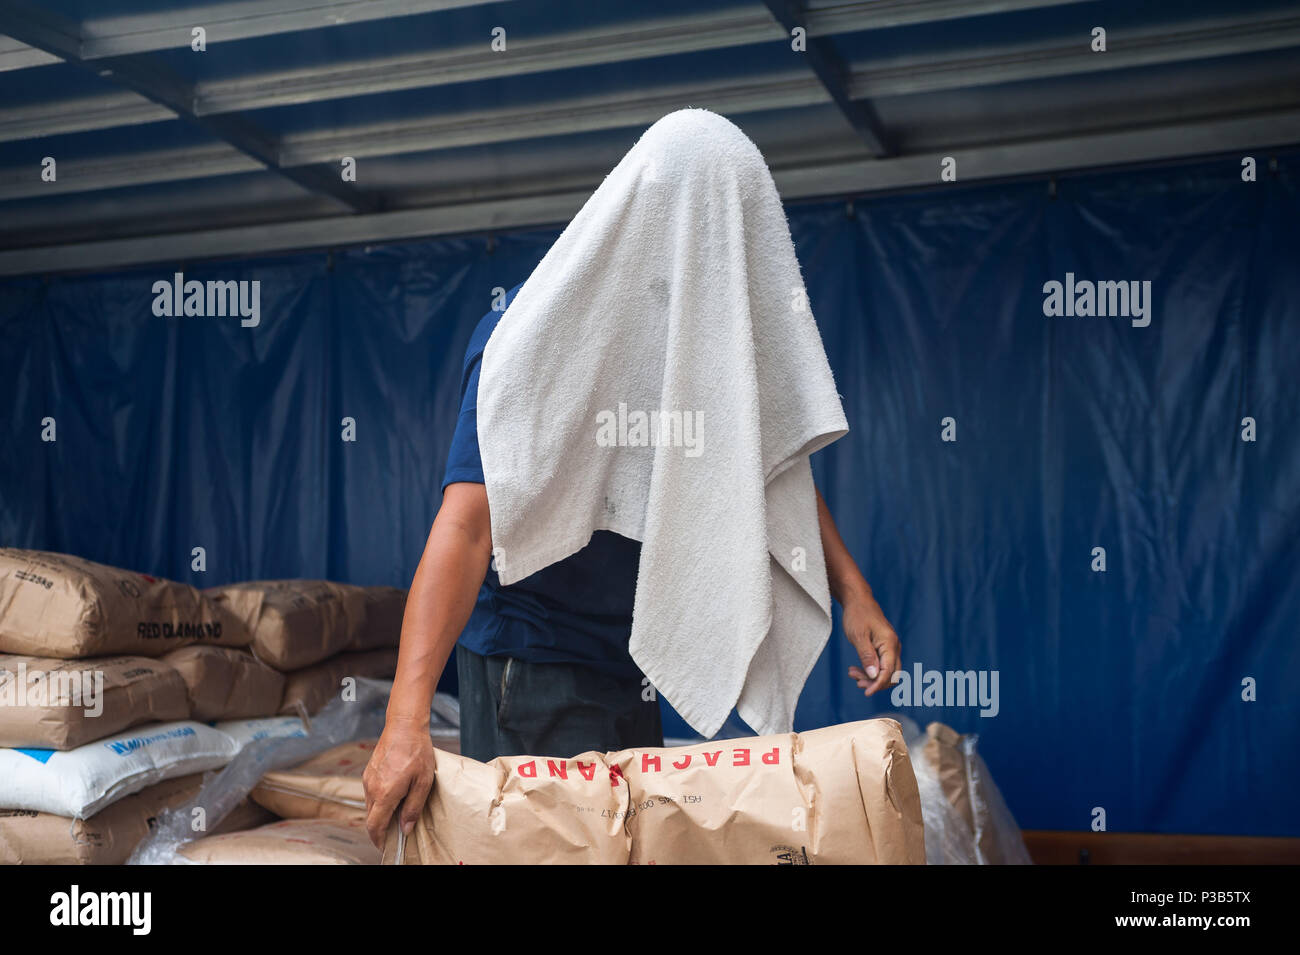 Singapore, Republic of Singapore, workers unload flour sacks from a truck - Stock Image